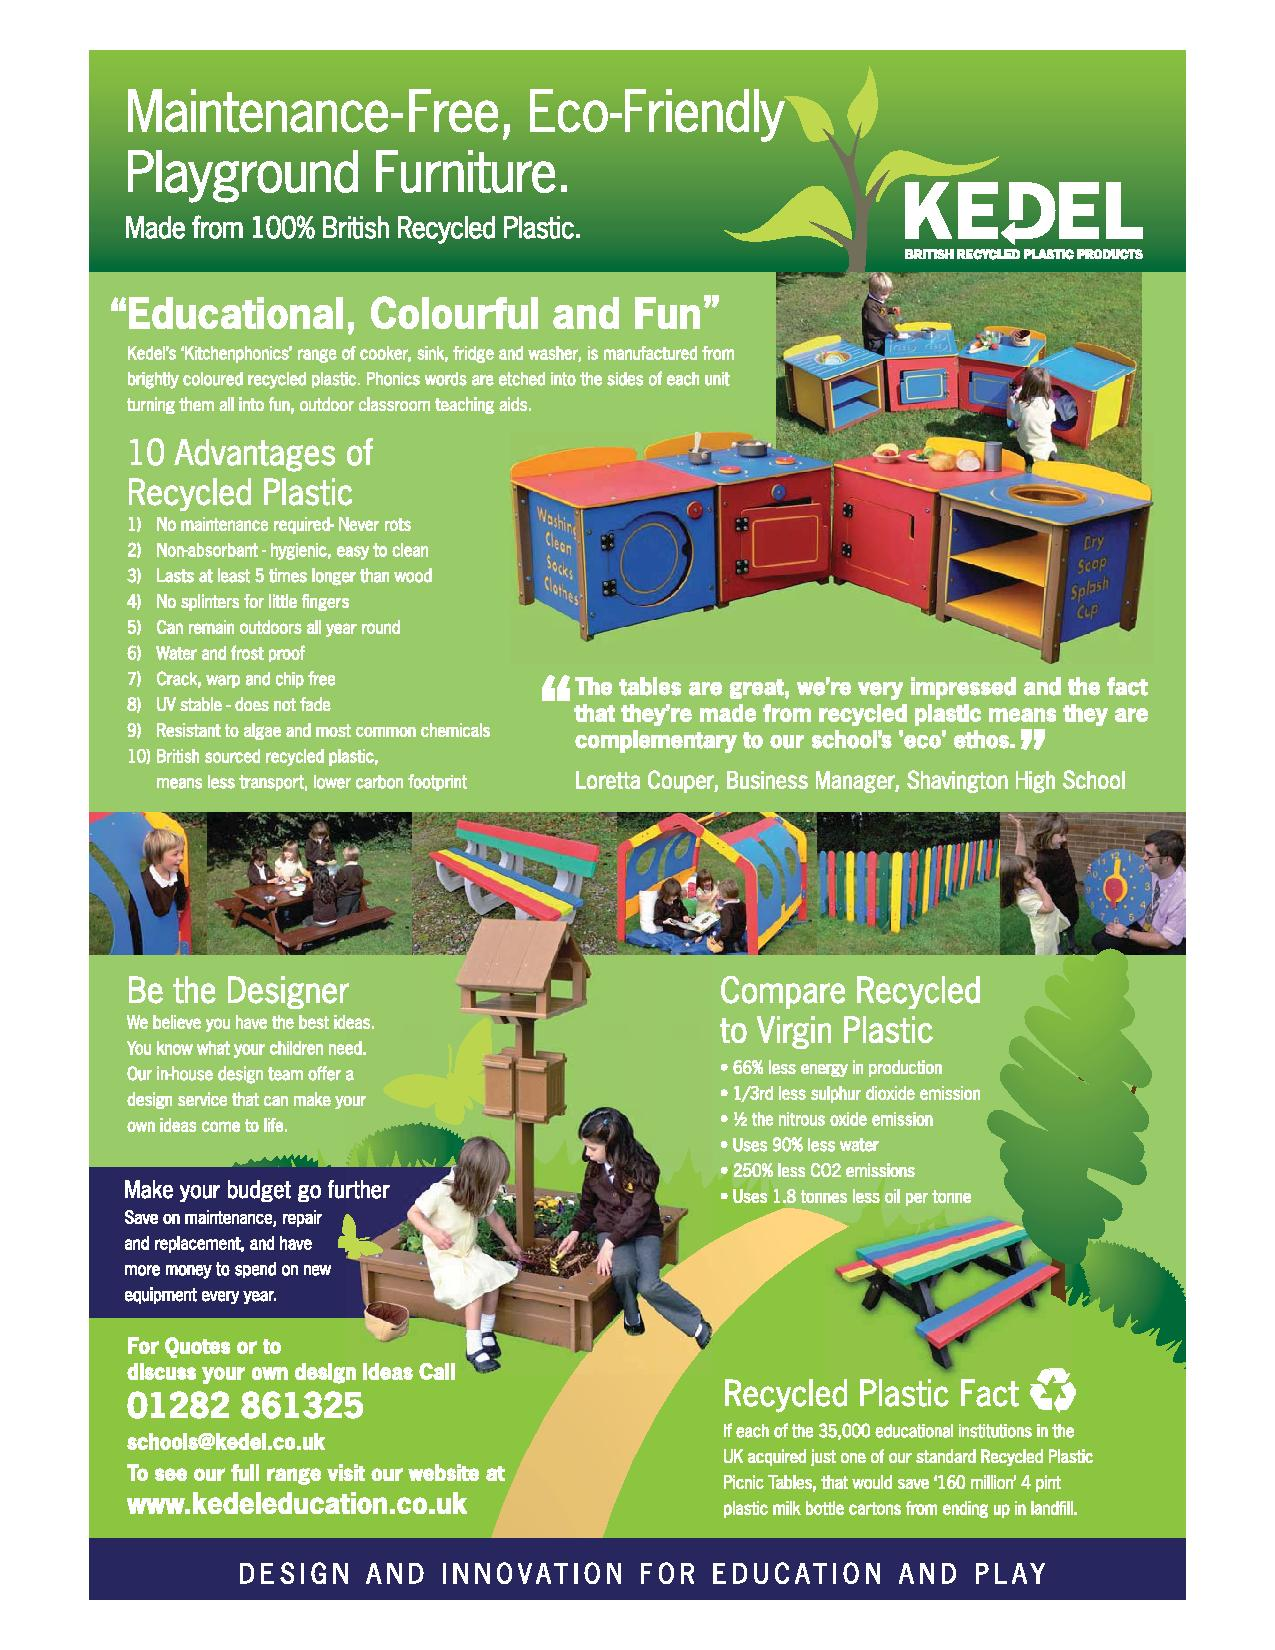 Recycled Plastic Playground Furniture Leaflet